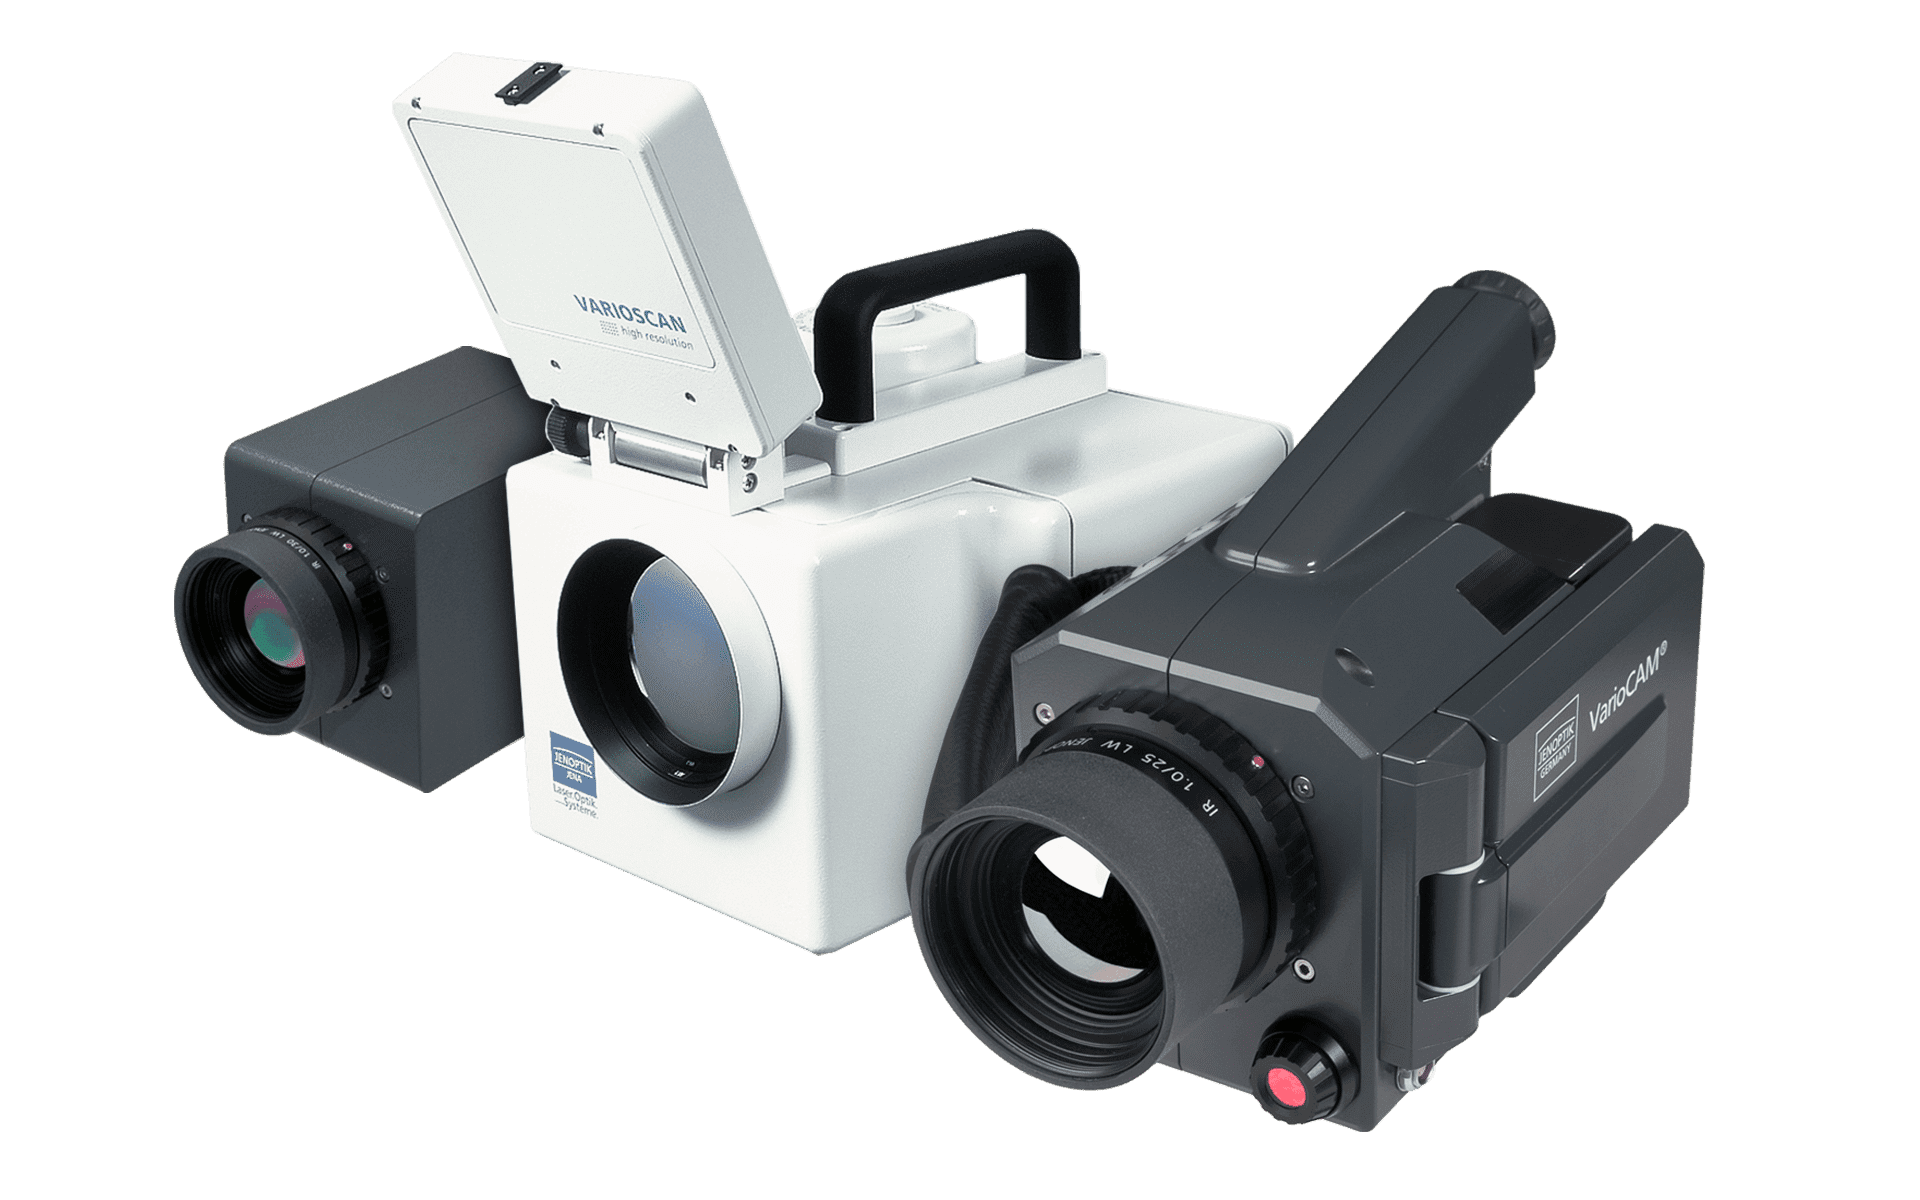 Older infrared camera models from InfraTec